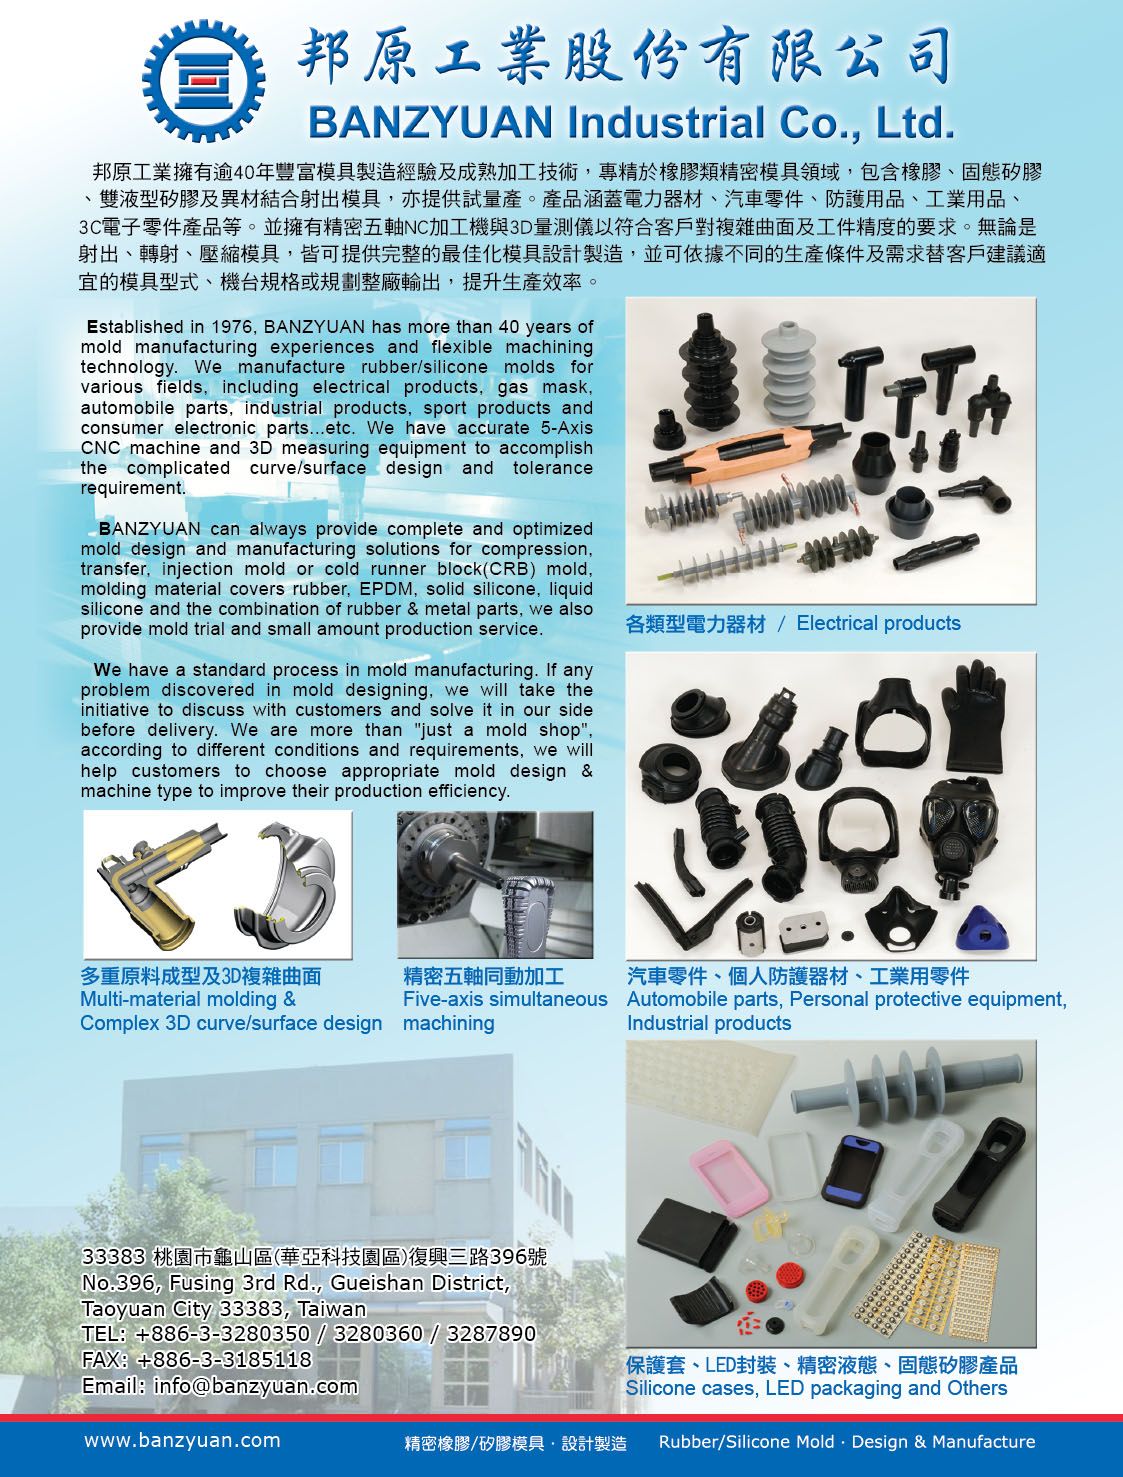 BANZ YUAN INDUSTRIAL CO., LTD.